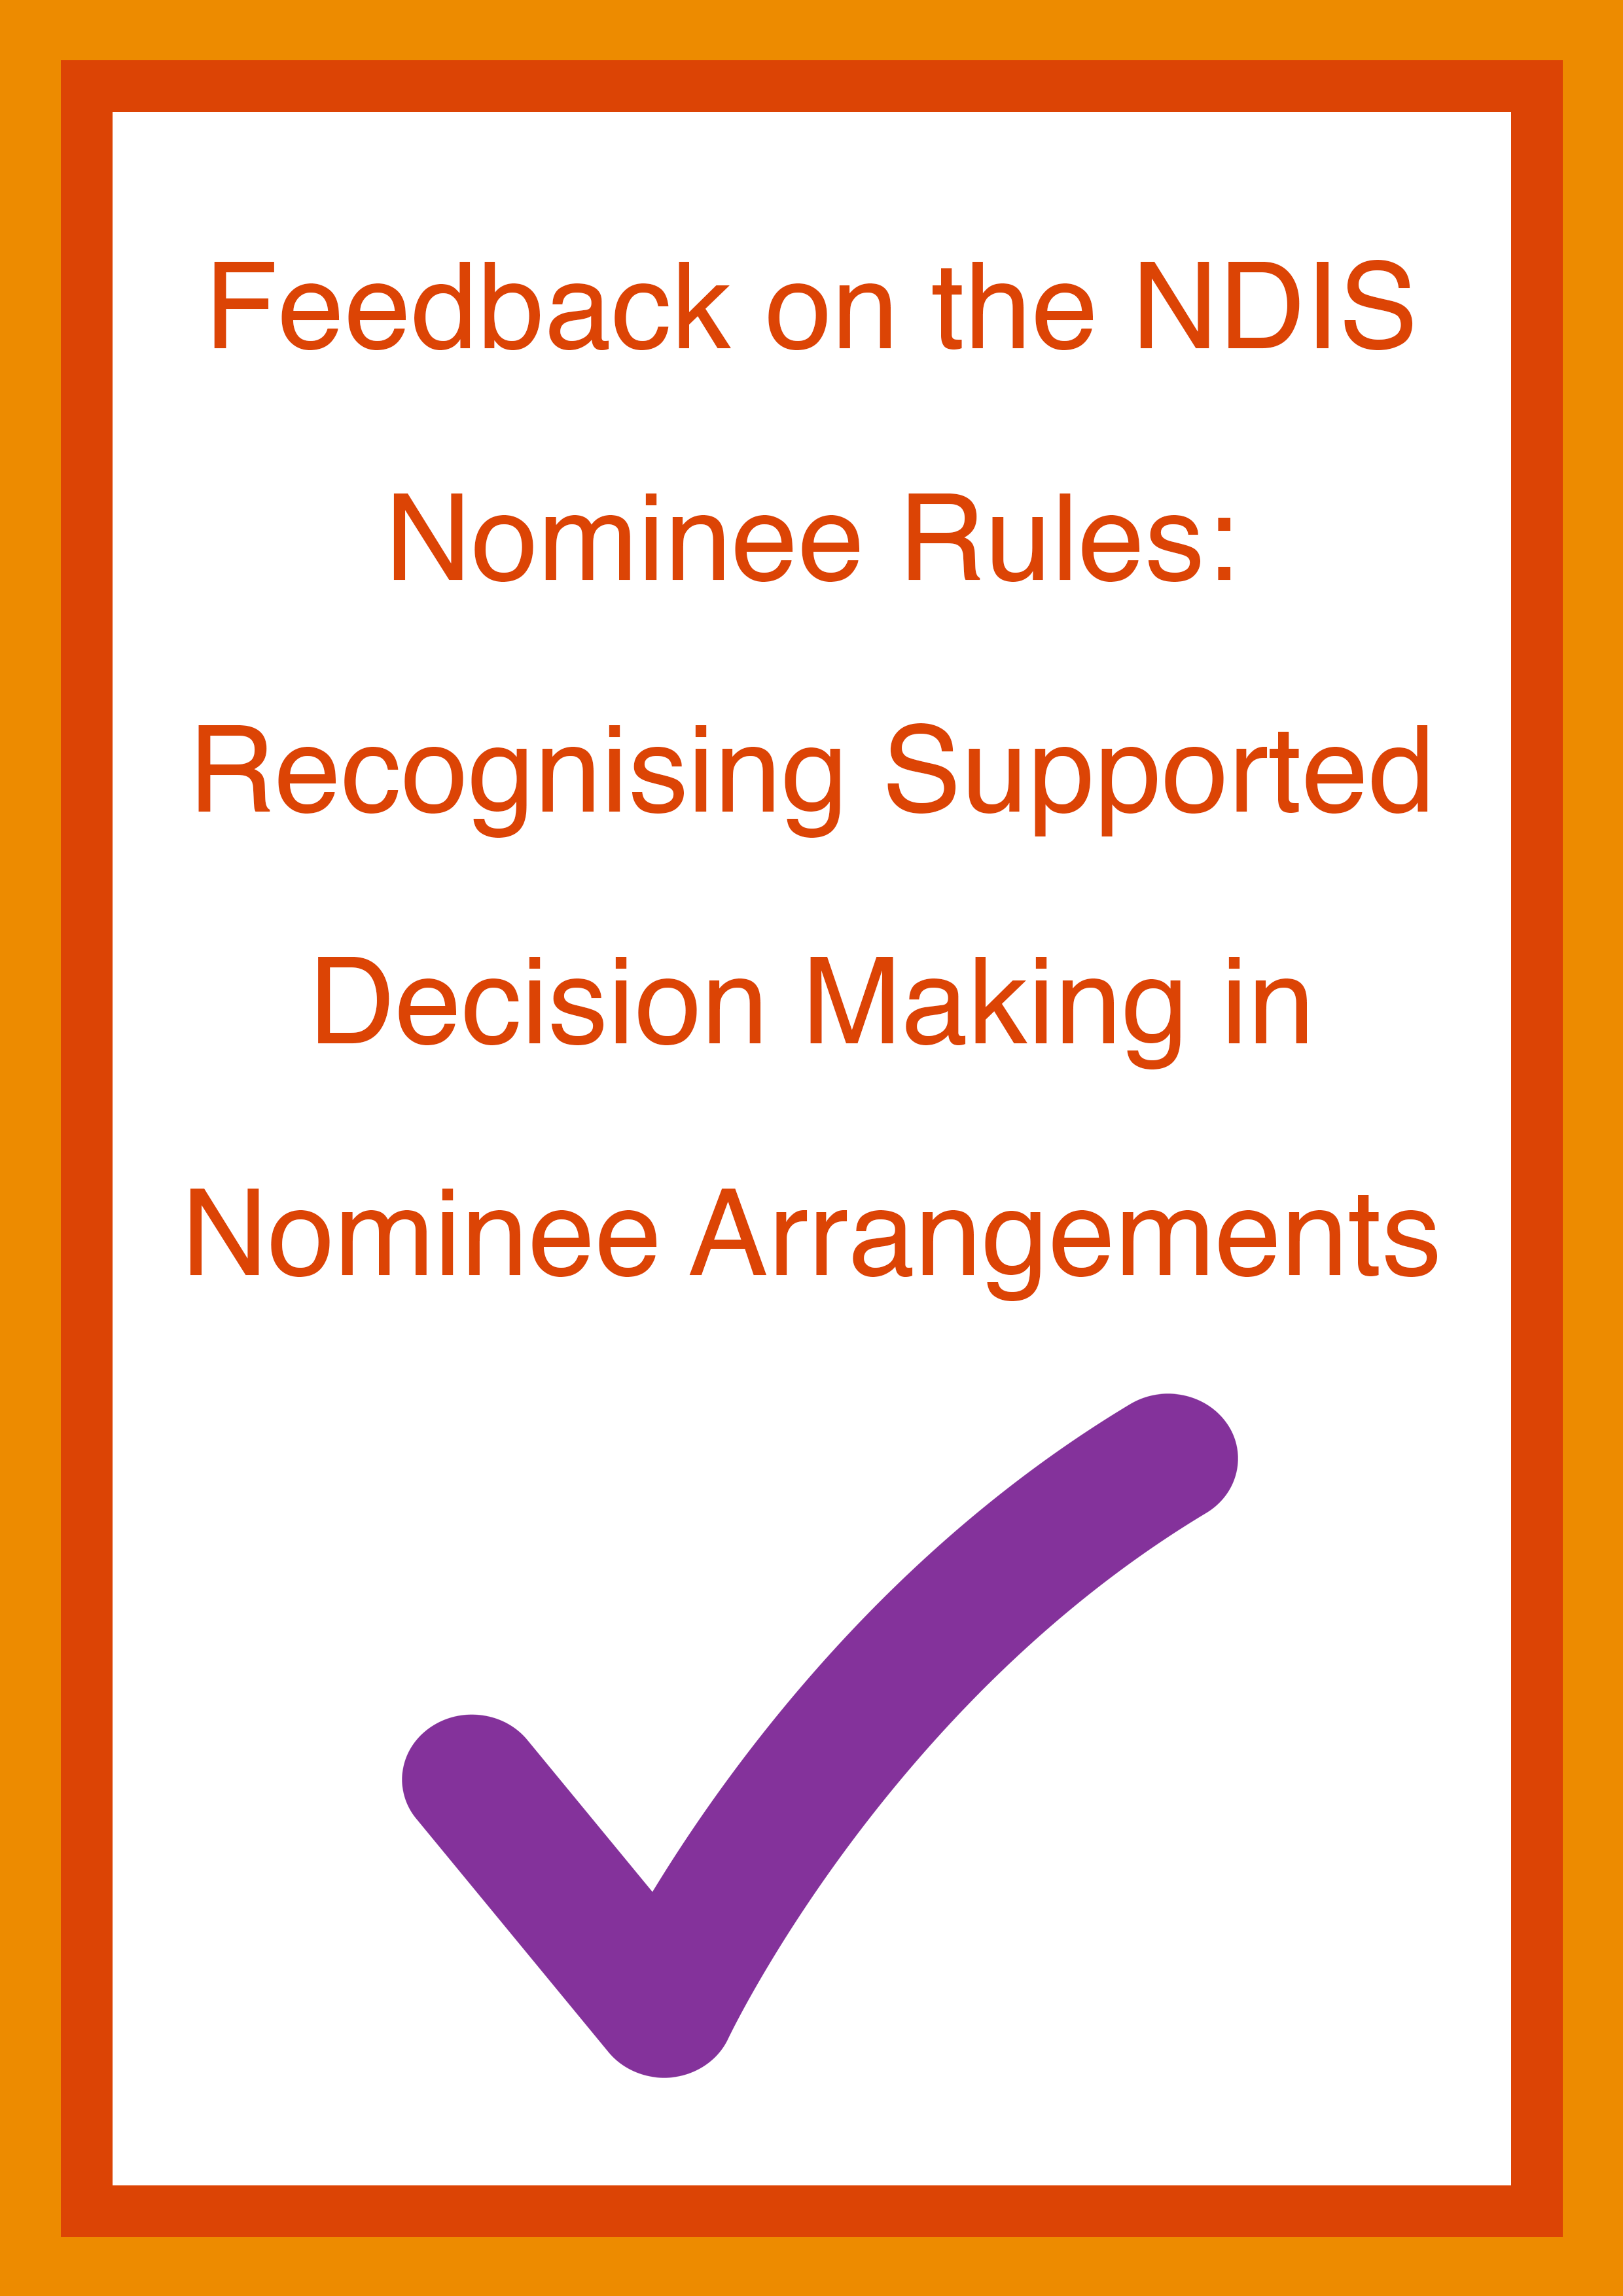 Cover art for: Feedback on the NDIS Nominee Rules: Recognising supported decision making in nominee arrangements